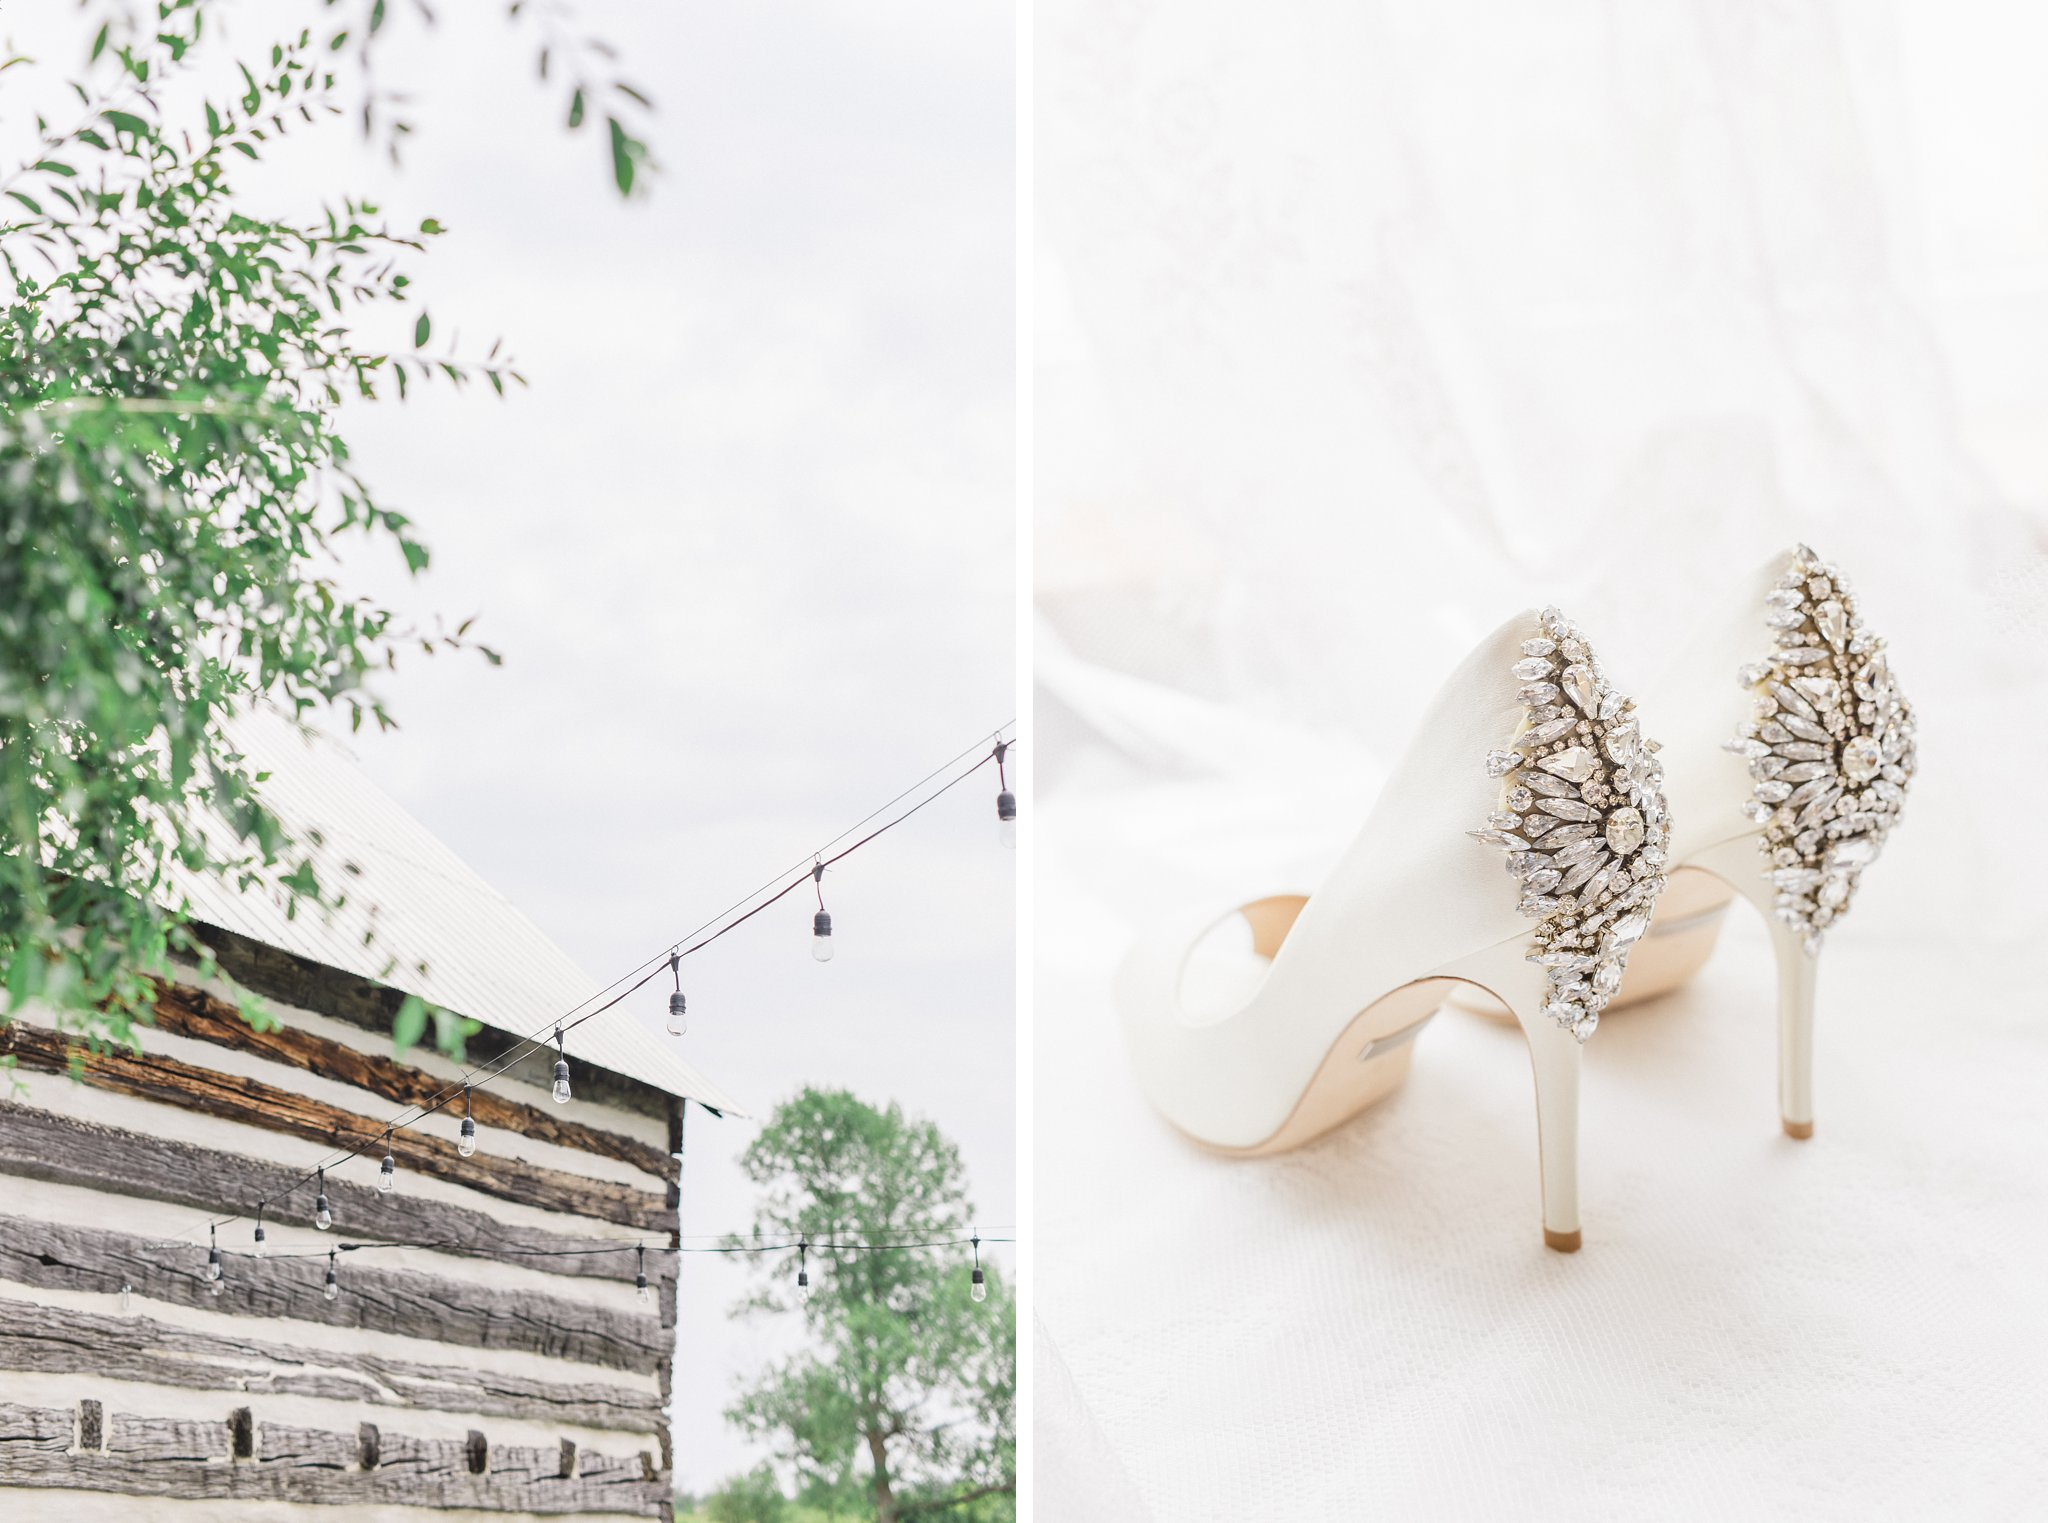 Bride wore badgley mischka shoes when she was married at Stonefields, Amy Pinder Photography